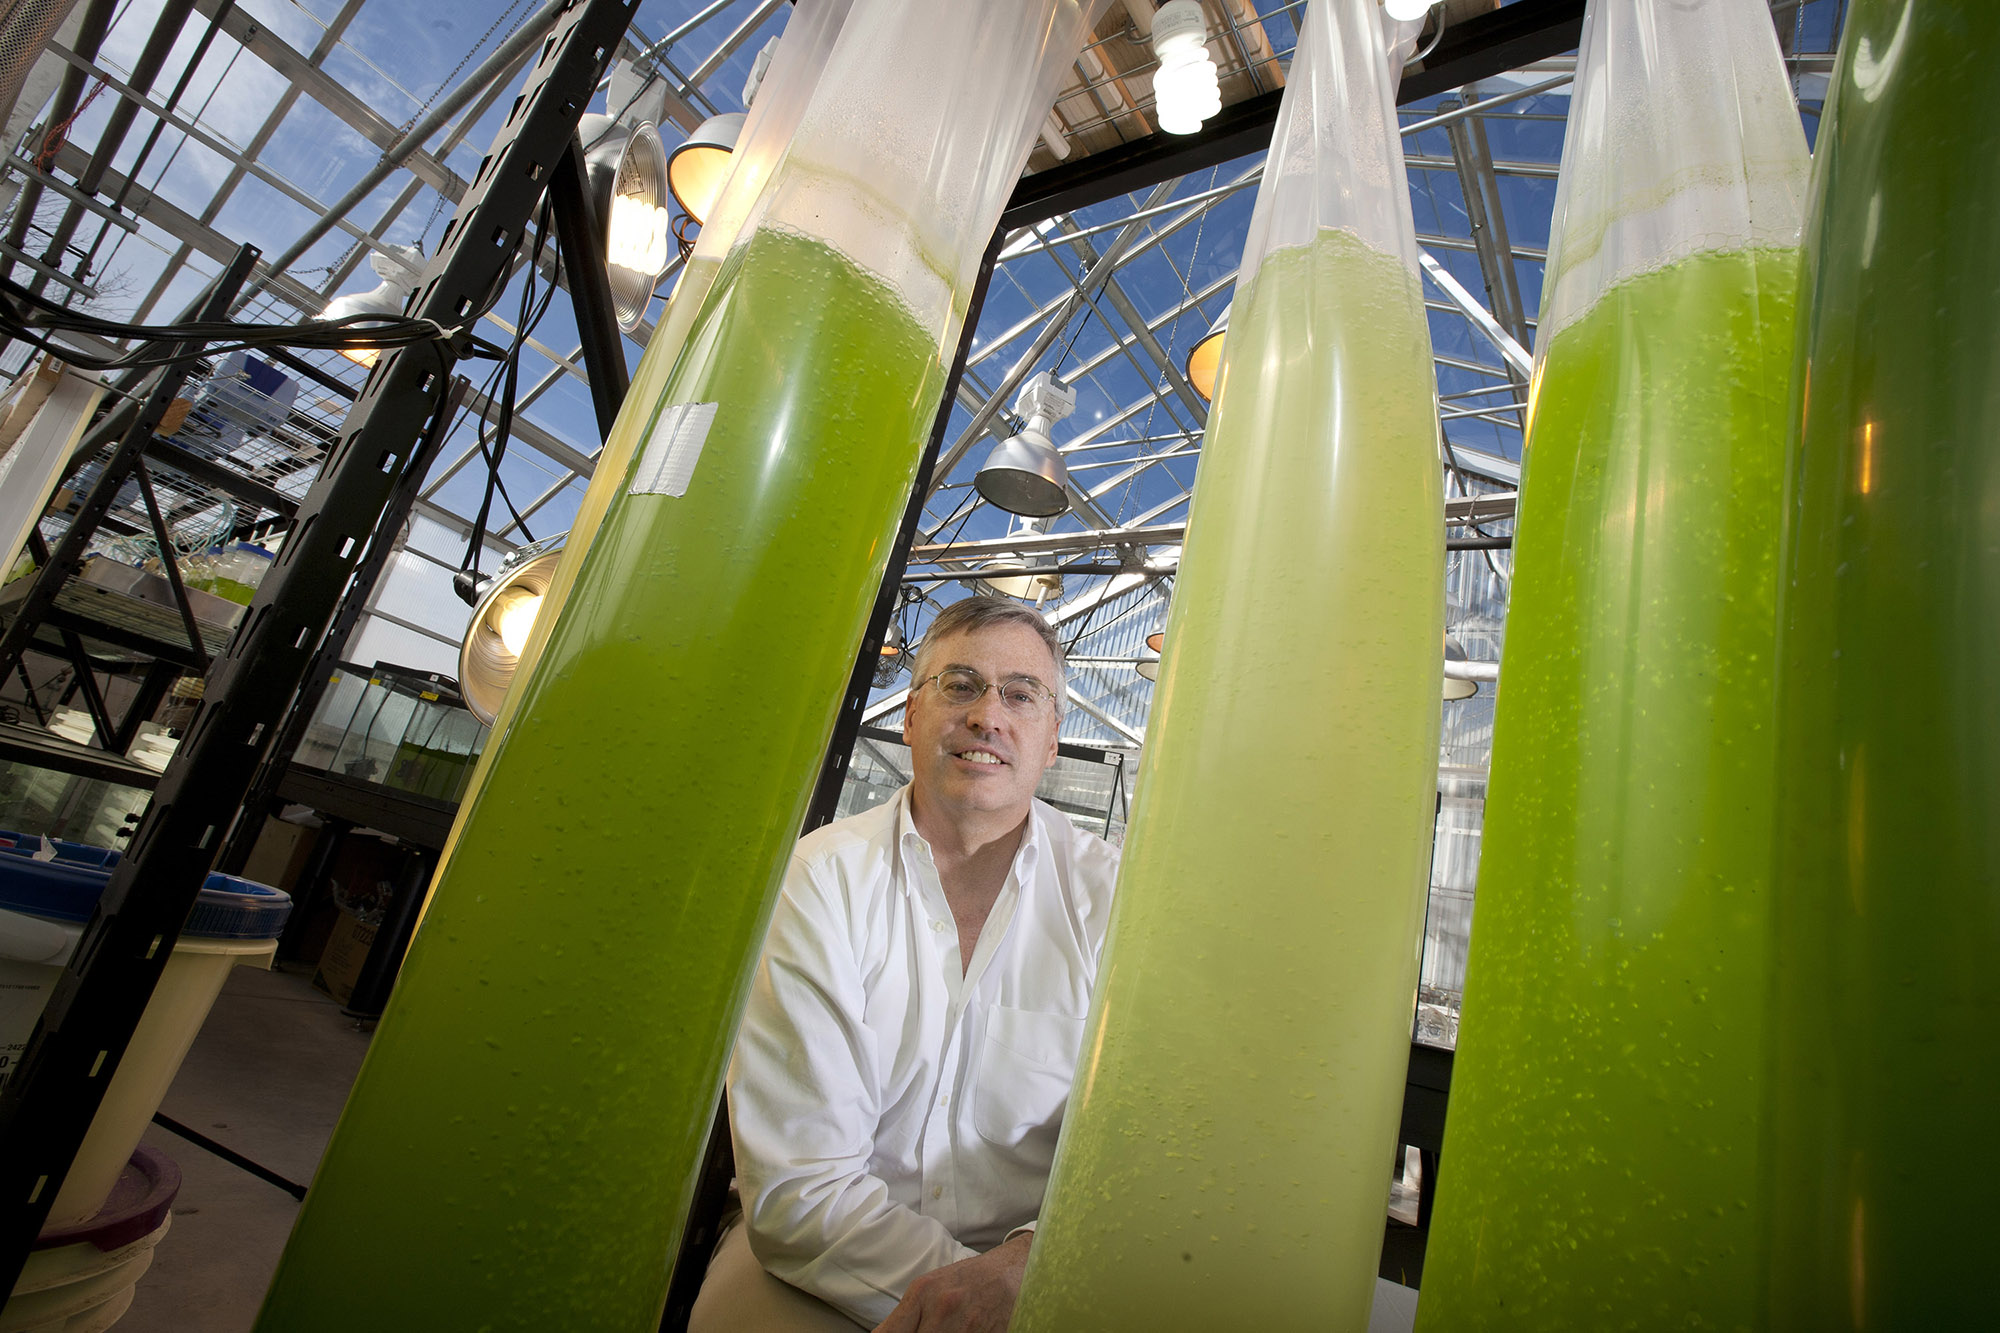 George Oyler, a University of Nebraska-Lincoln researcher and associate professor of biochemistry, said he believes that as more research is applied, advanced biofuels will continue to develop -- and at a faster pace. Oyler checks the algae bags in the al